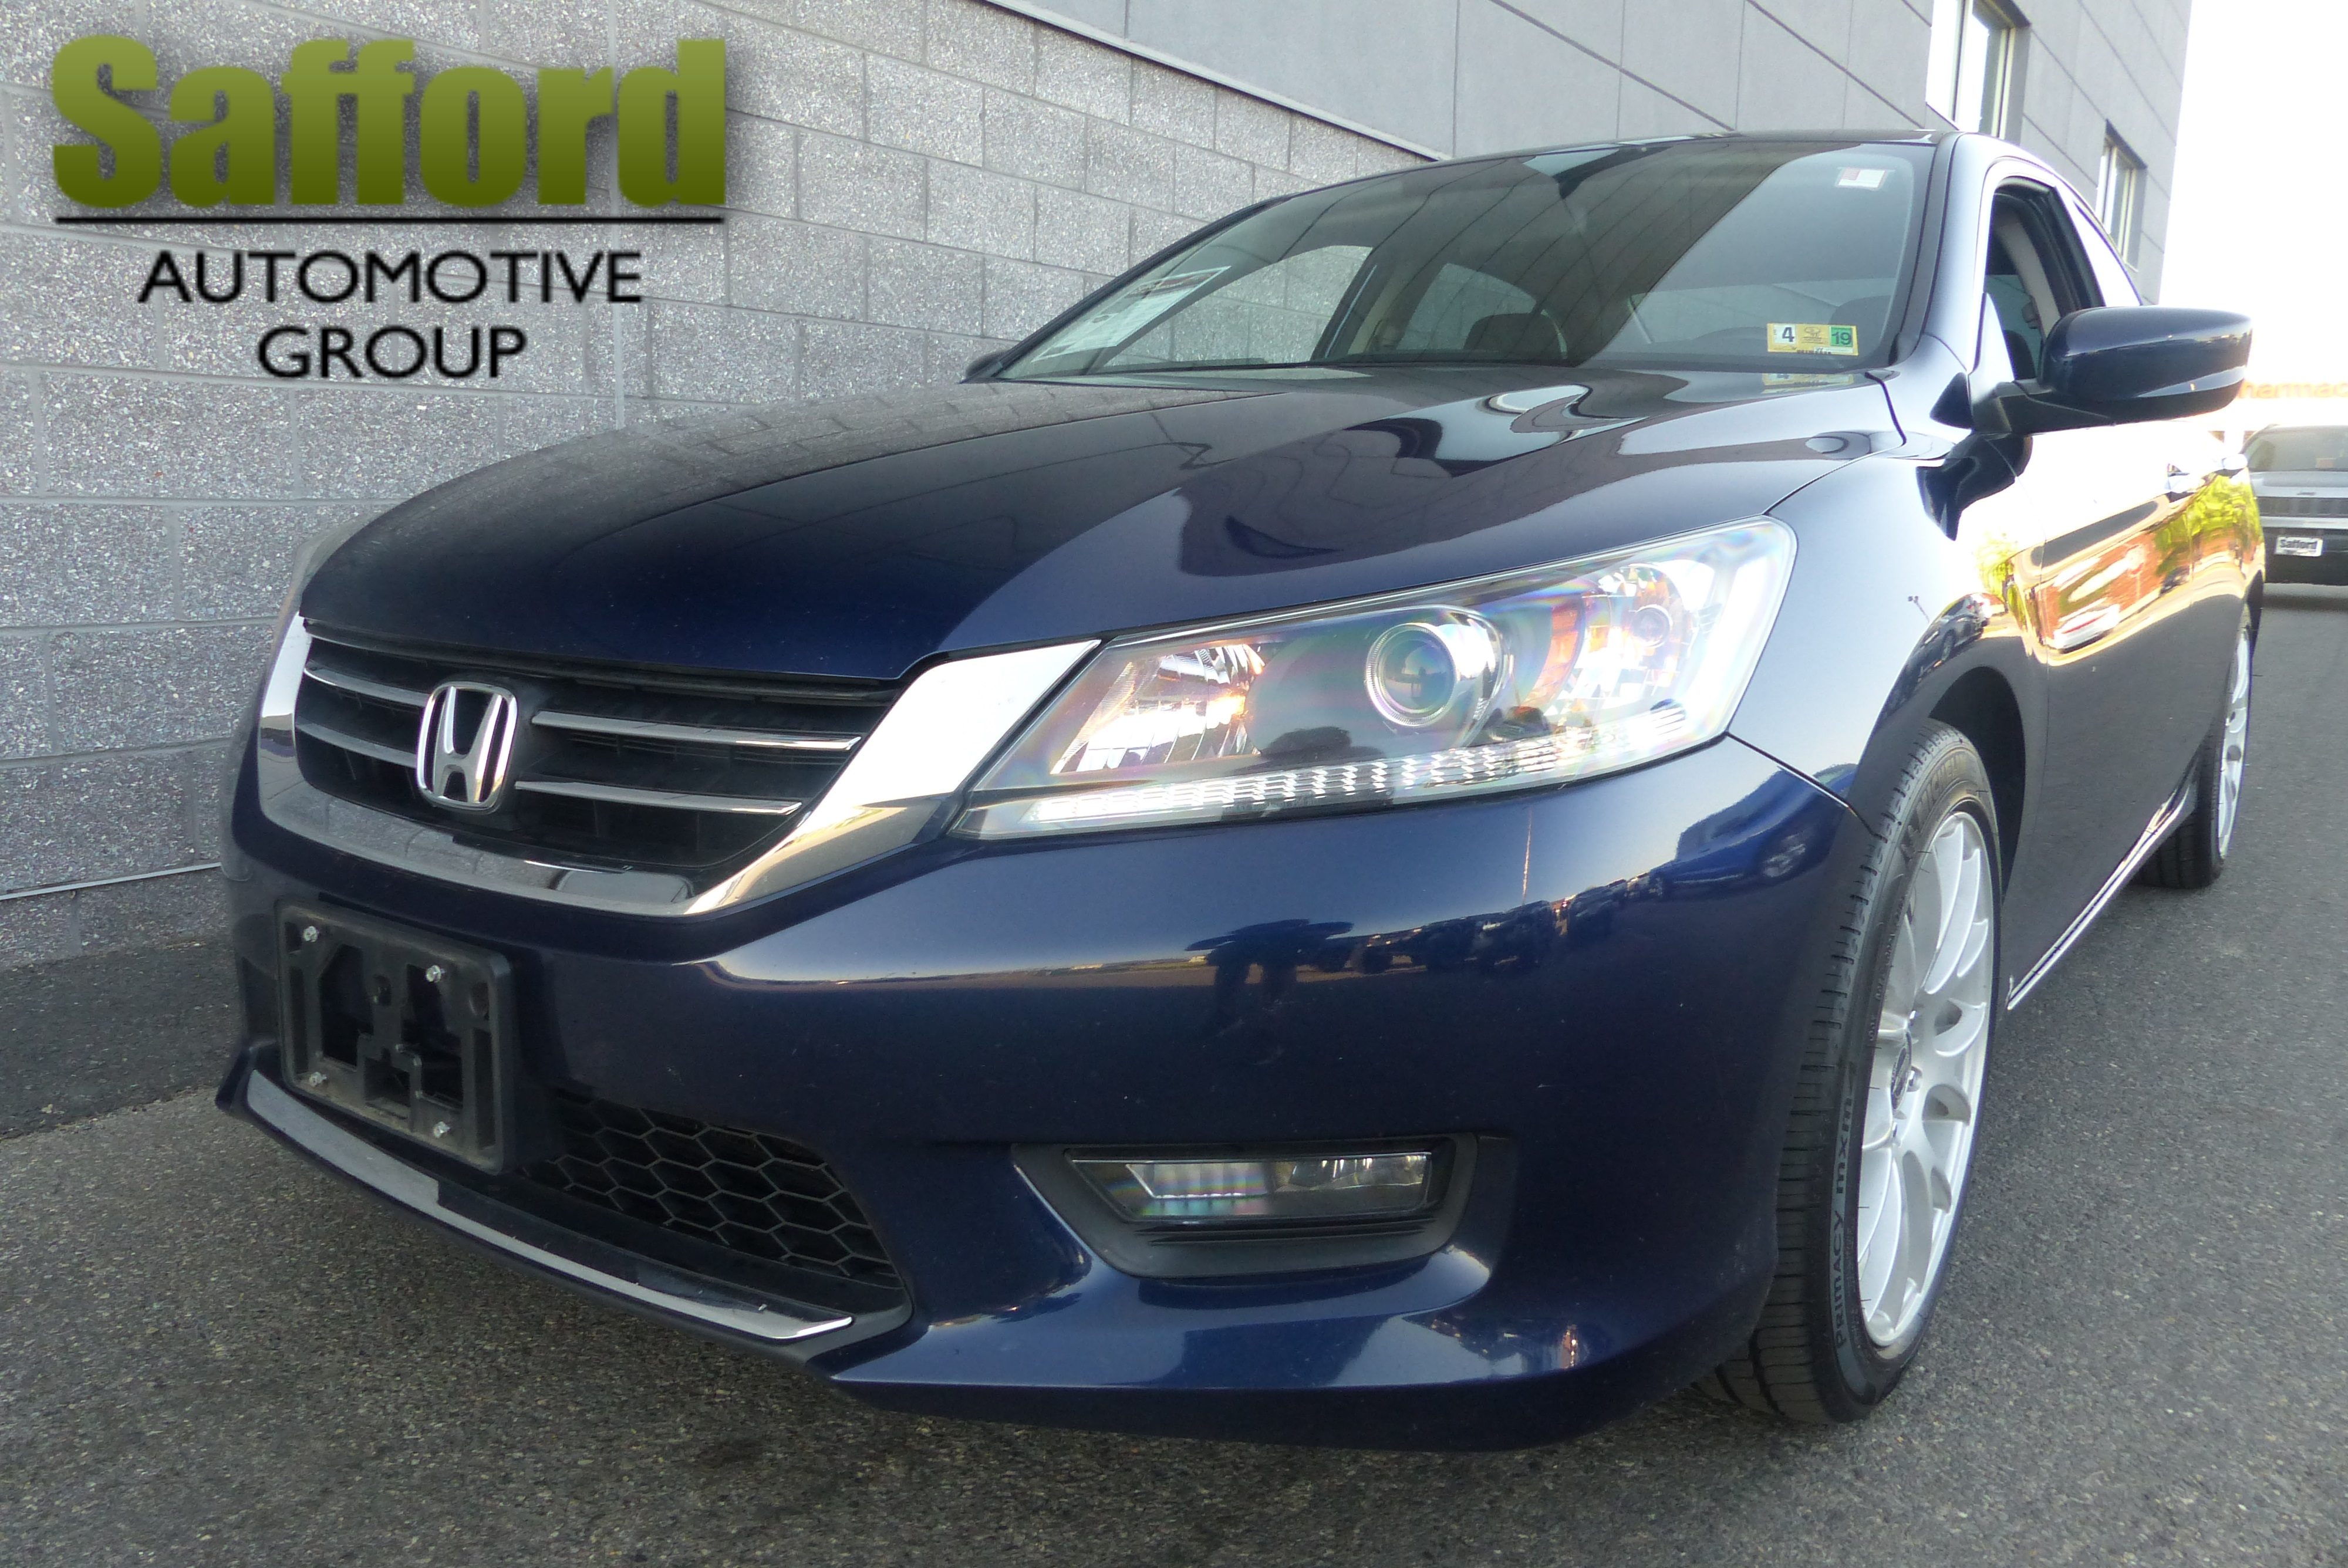 vehicles honda full options specifications img gcc qatar accord carsedan living